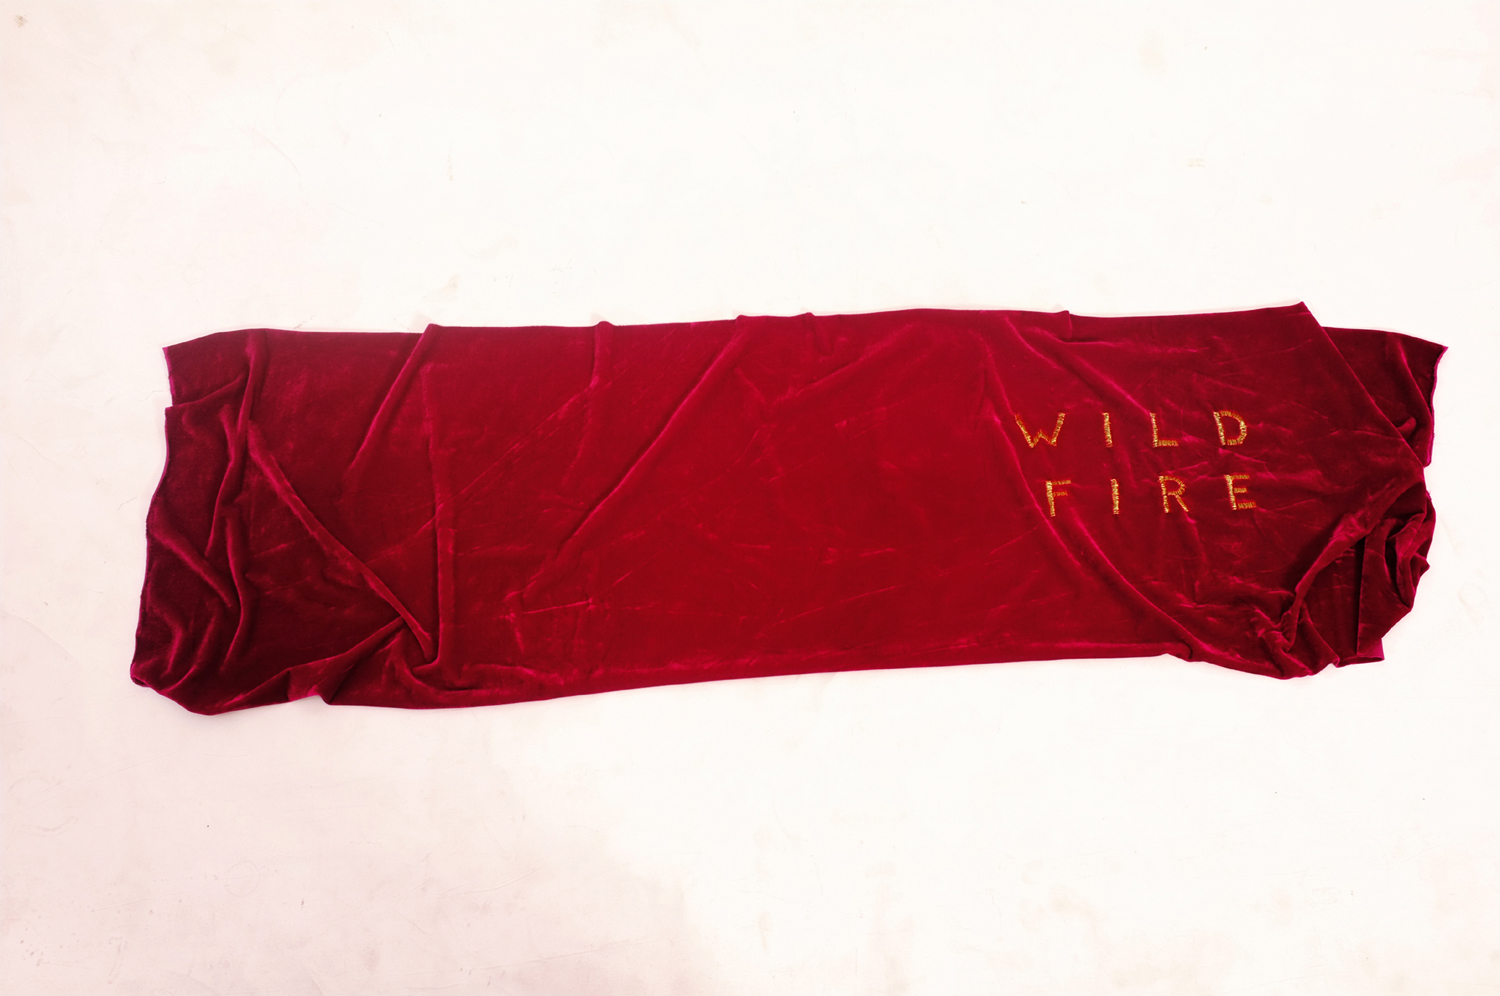 Ayesha Sultana,  Wild Fire , 2014. Courtesy of the Samdani Art Foundation